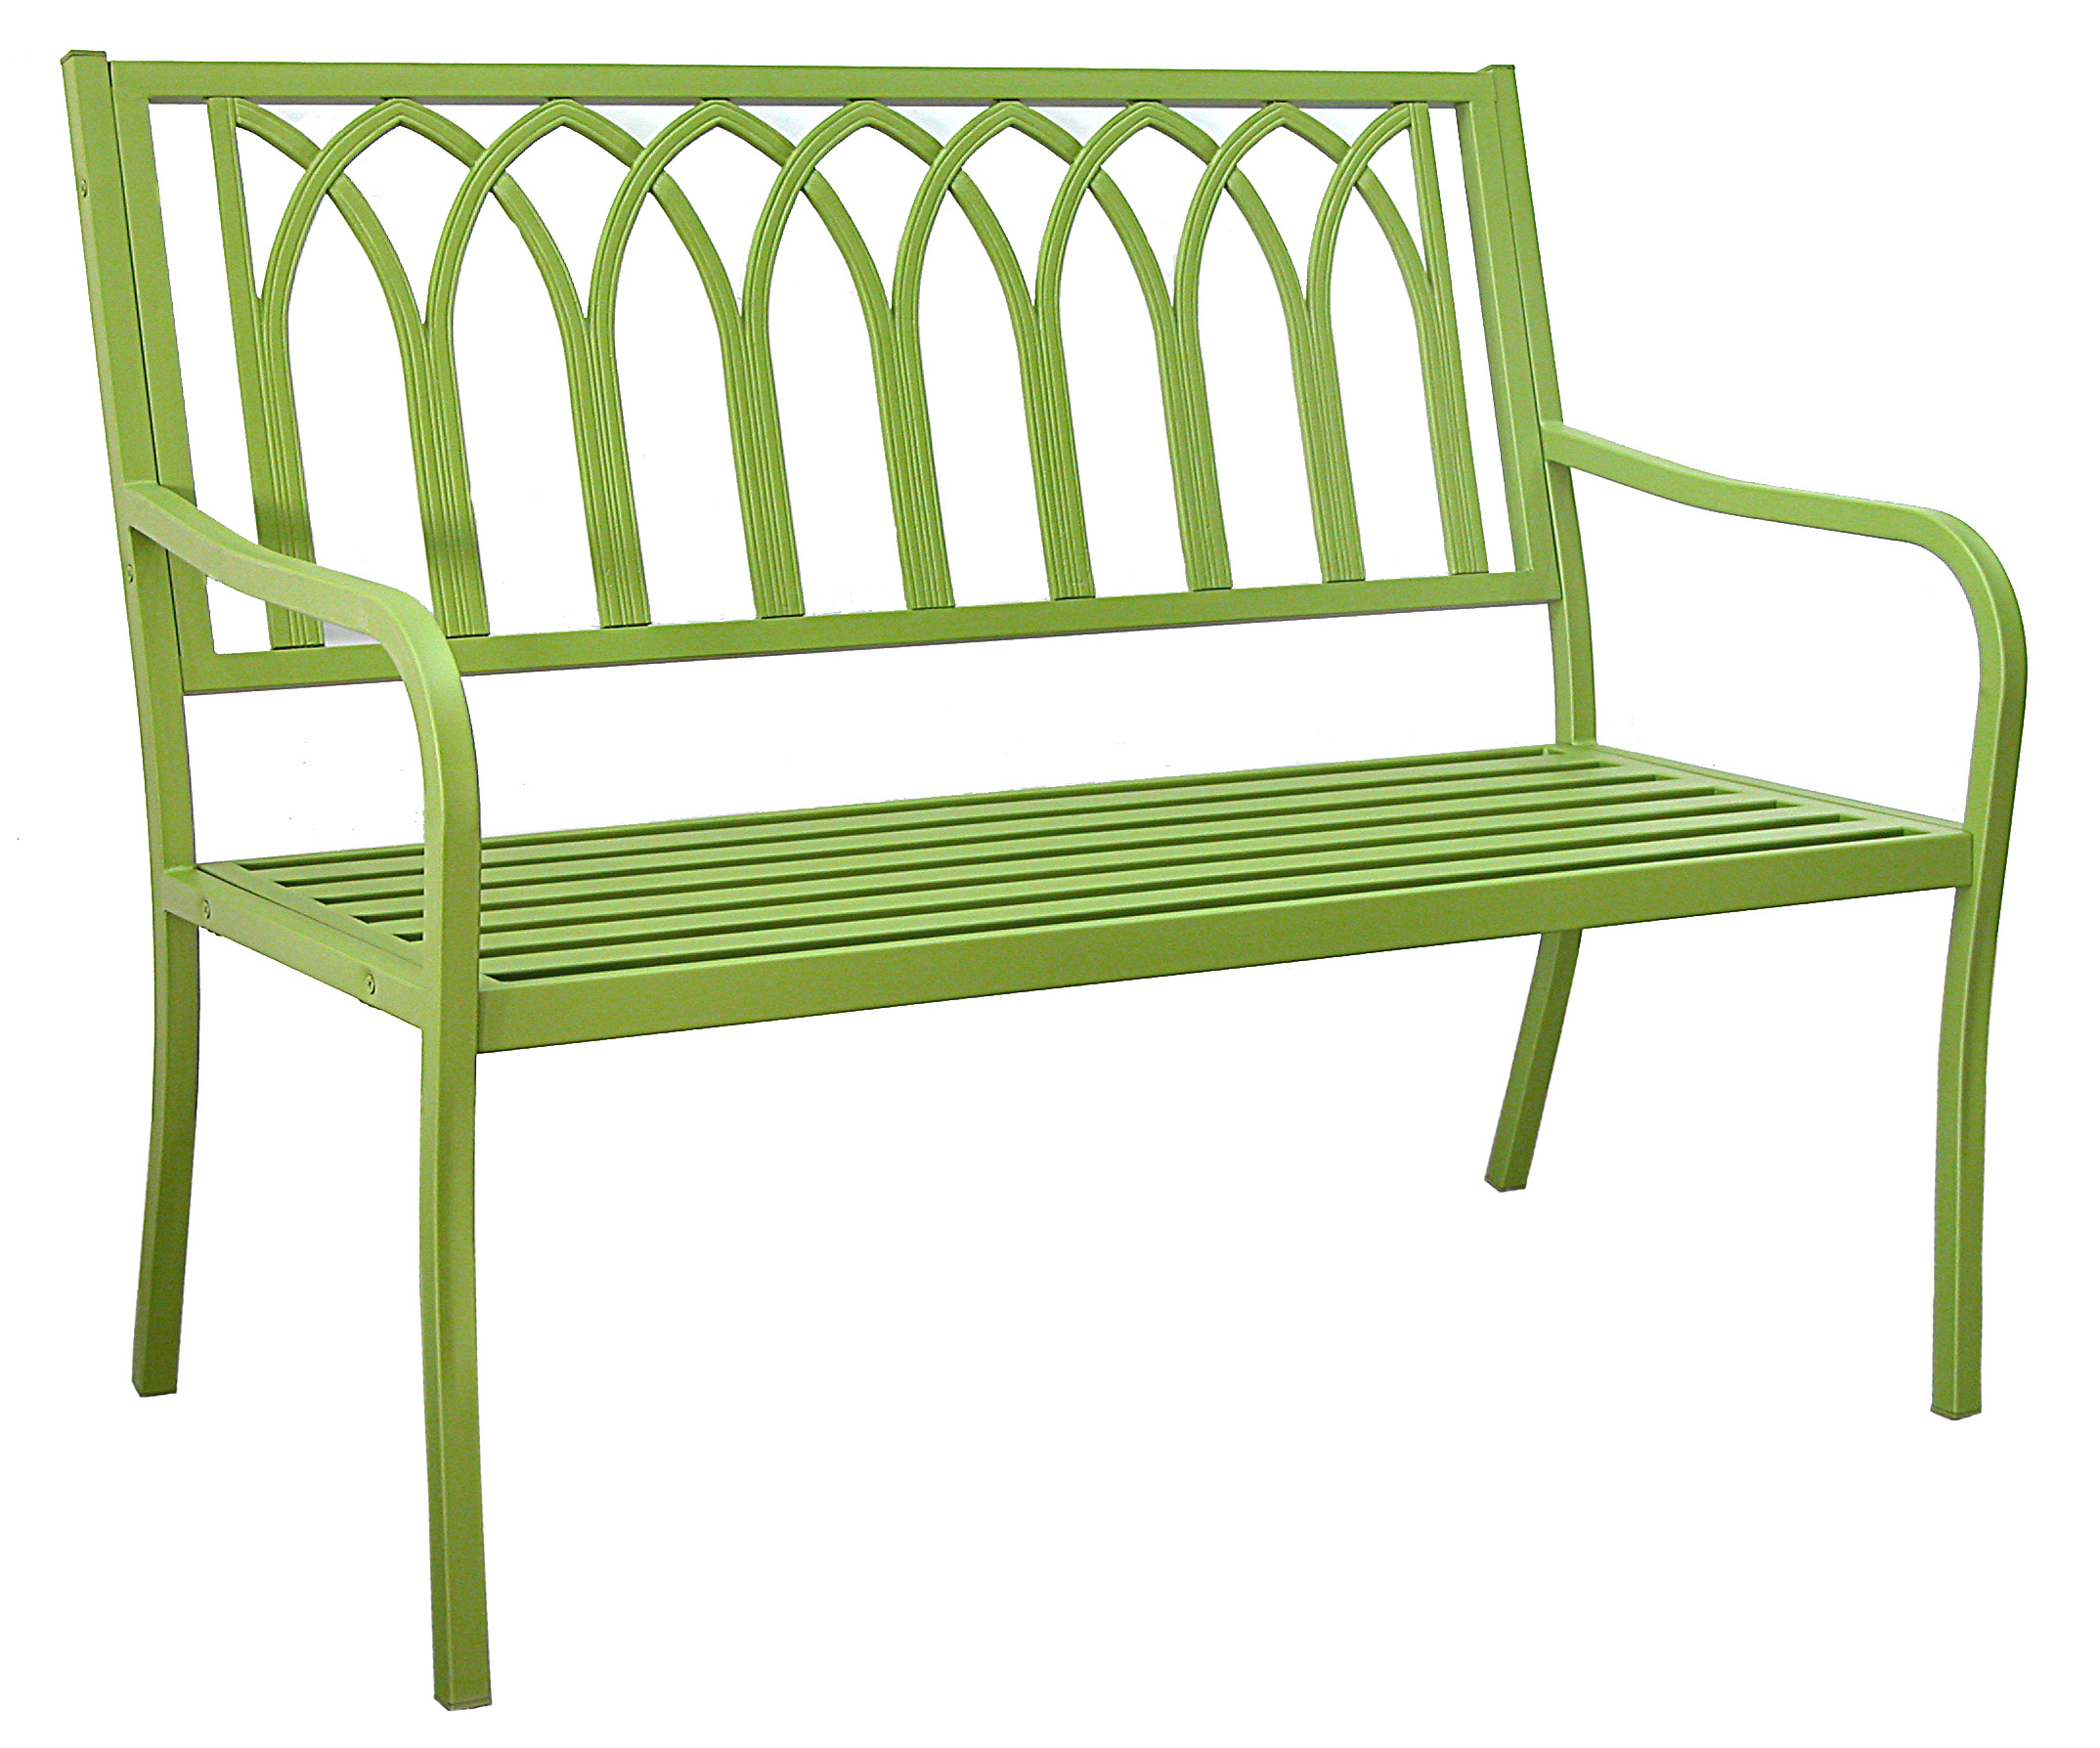 Patio furniture bench steel lakeside urban green for Metal benches for outdoors